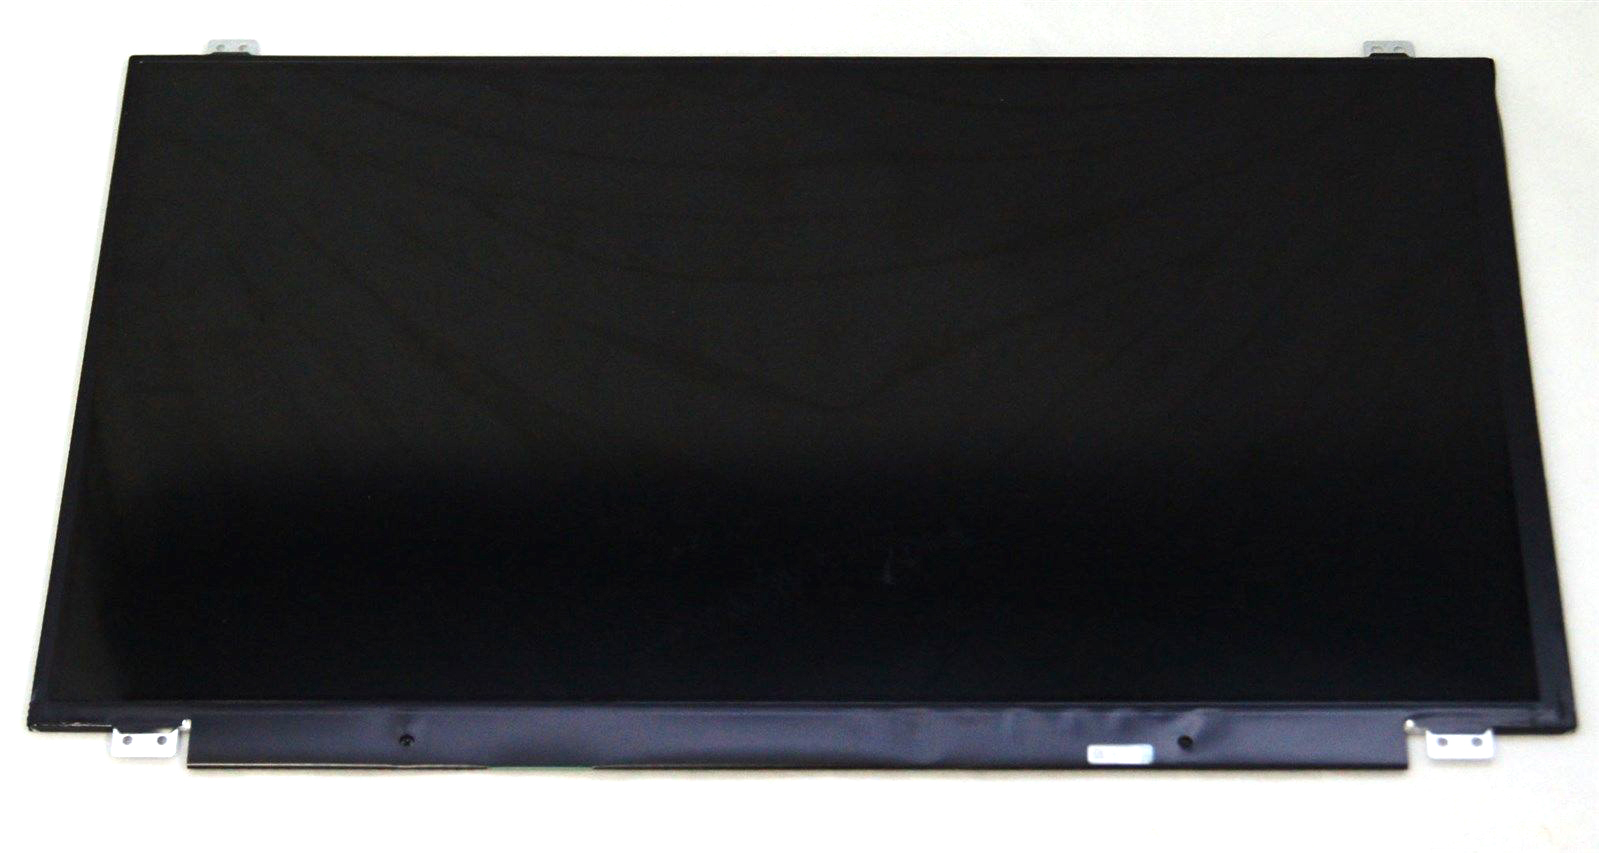 QuYing Laptop LCD Screen for Acer ASPIRE V5-571P V5-552PG E5-531 ES1-512 E5-572G E5-573 E5-573G SERIES (15.6 1366x768 30pin) al15a32 laptop battery for acer aspire e5 473g e5 573g e5 553g kt 00403 025 4icr17 65